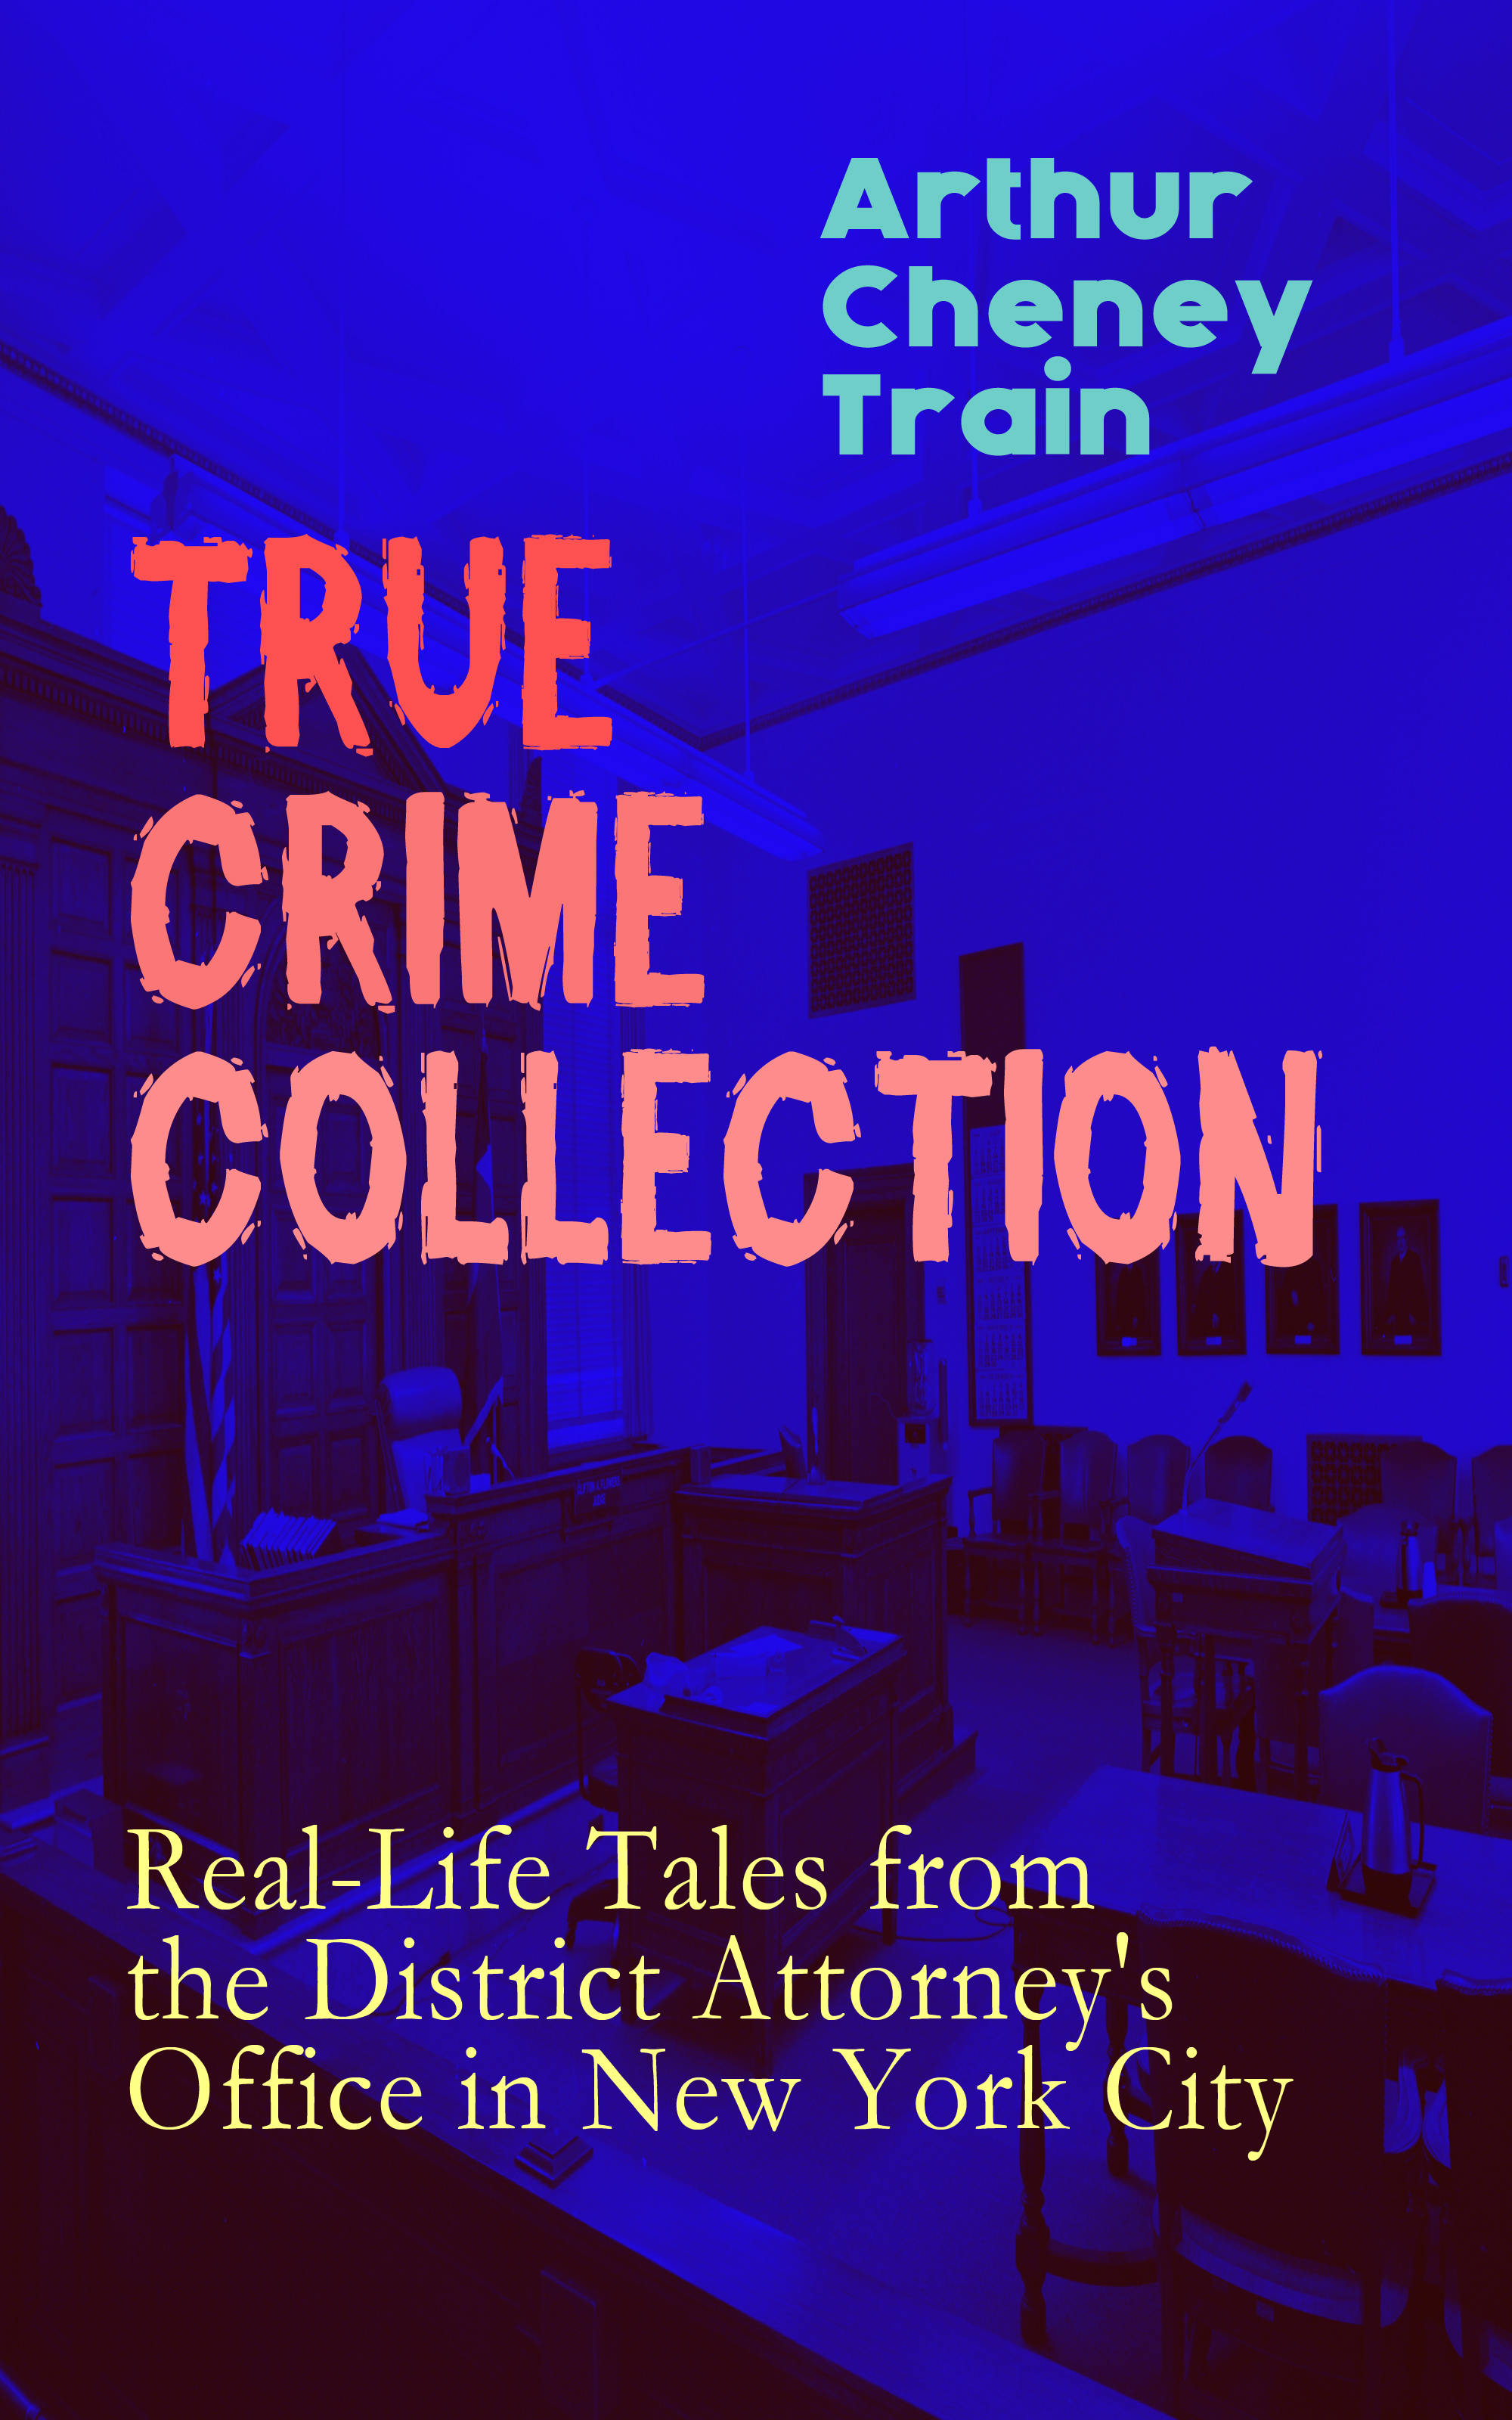 лучшая цена Arthur Cheney Train TRUE CRIME COLLECTION: Real-Life Tales from the District Attorney's Office in New York City